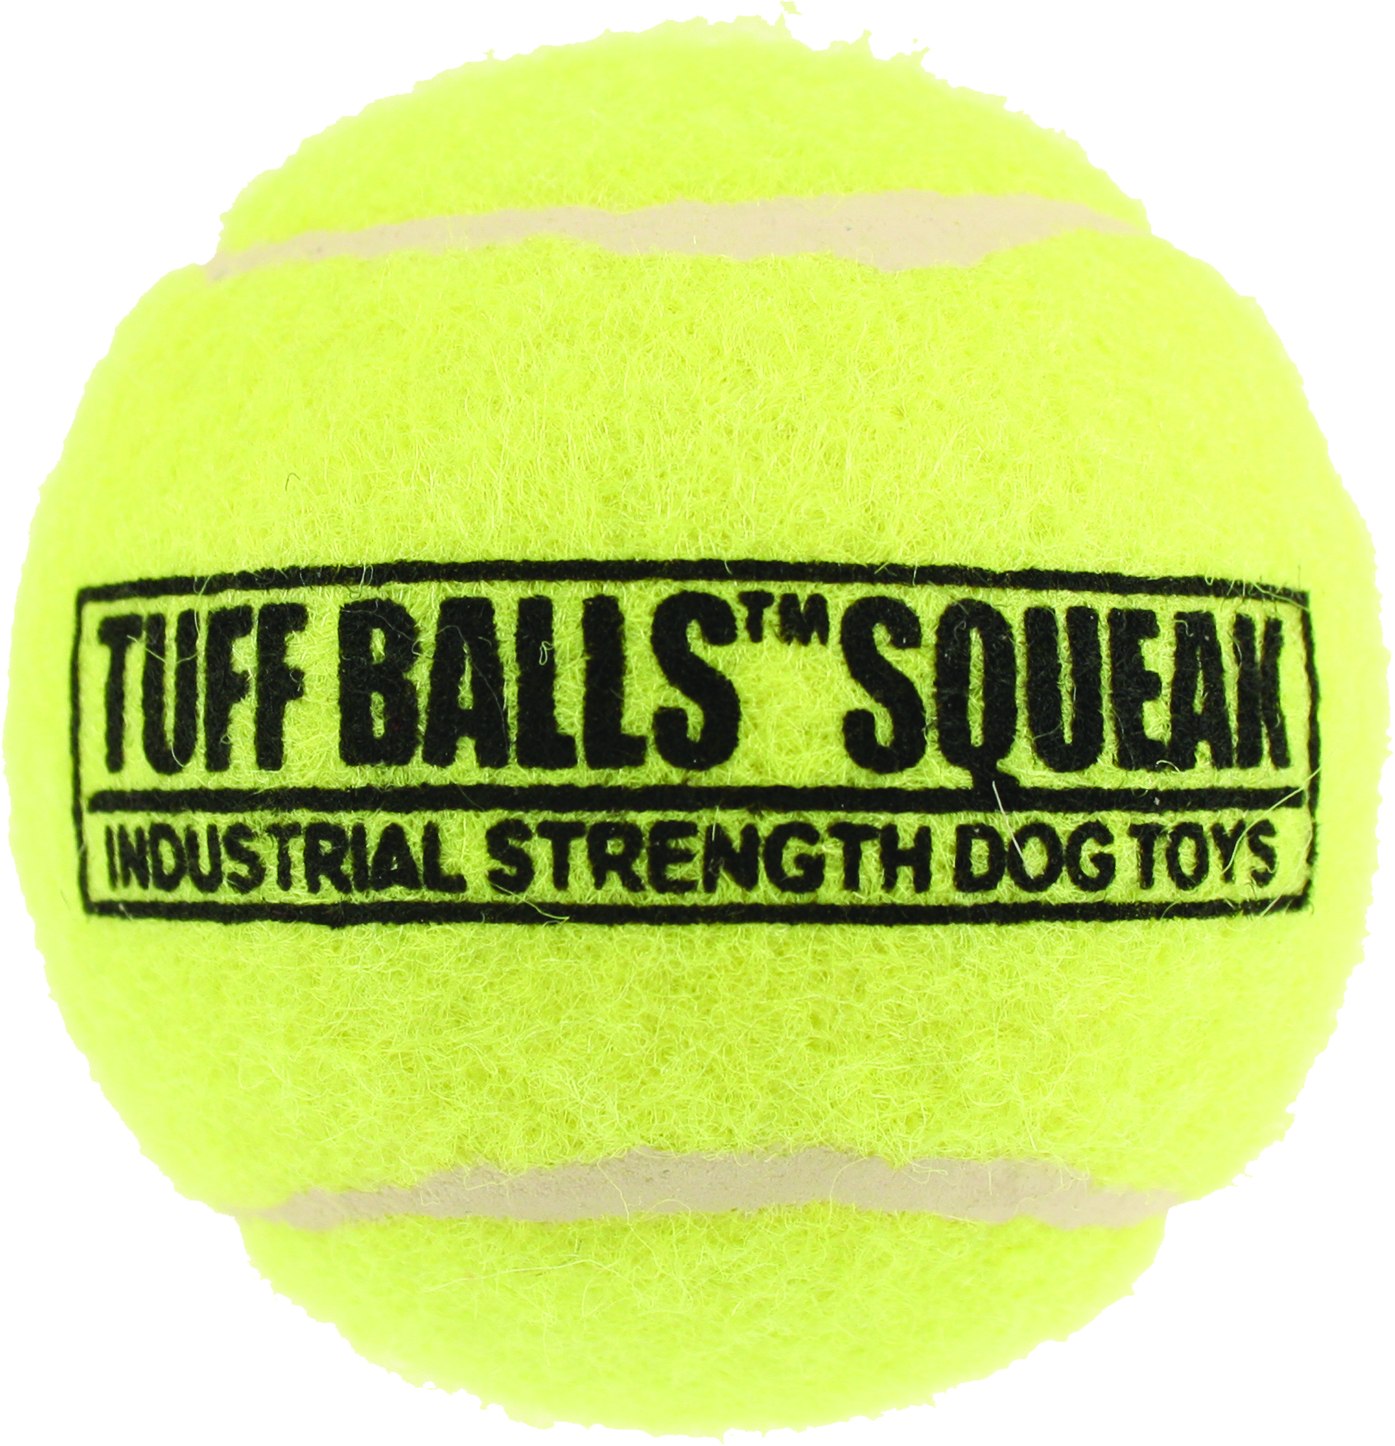 PETSPORT USA Tuff Ball Squeak Bulk